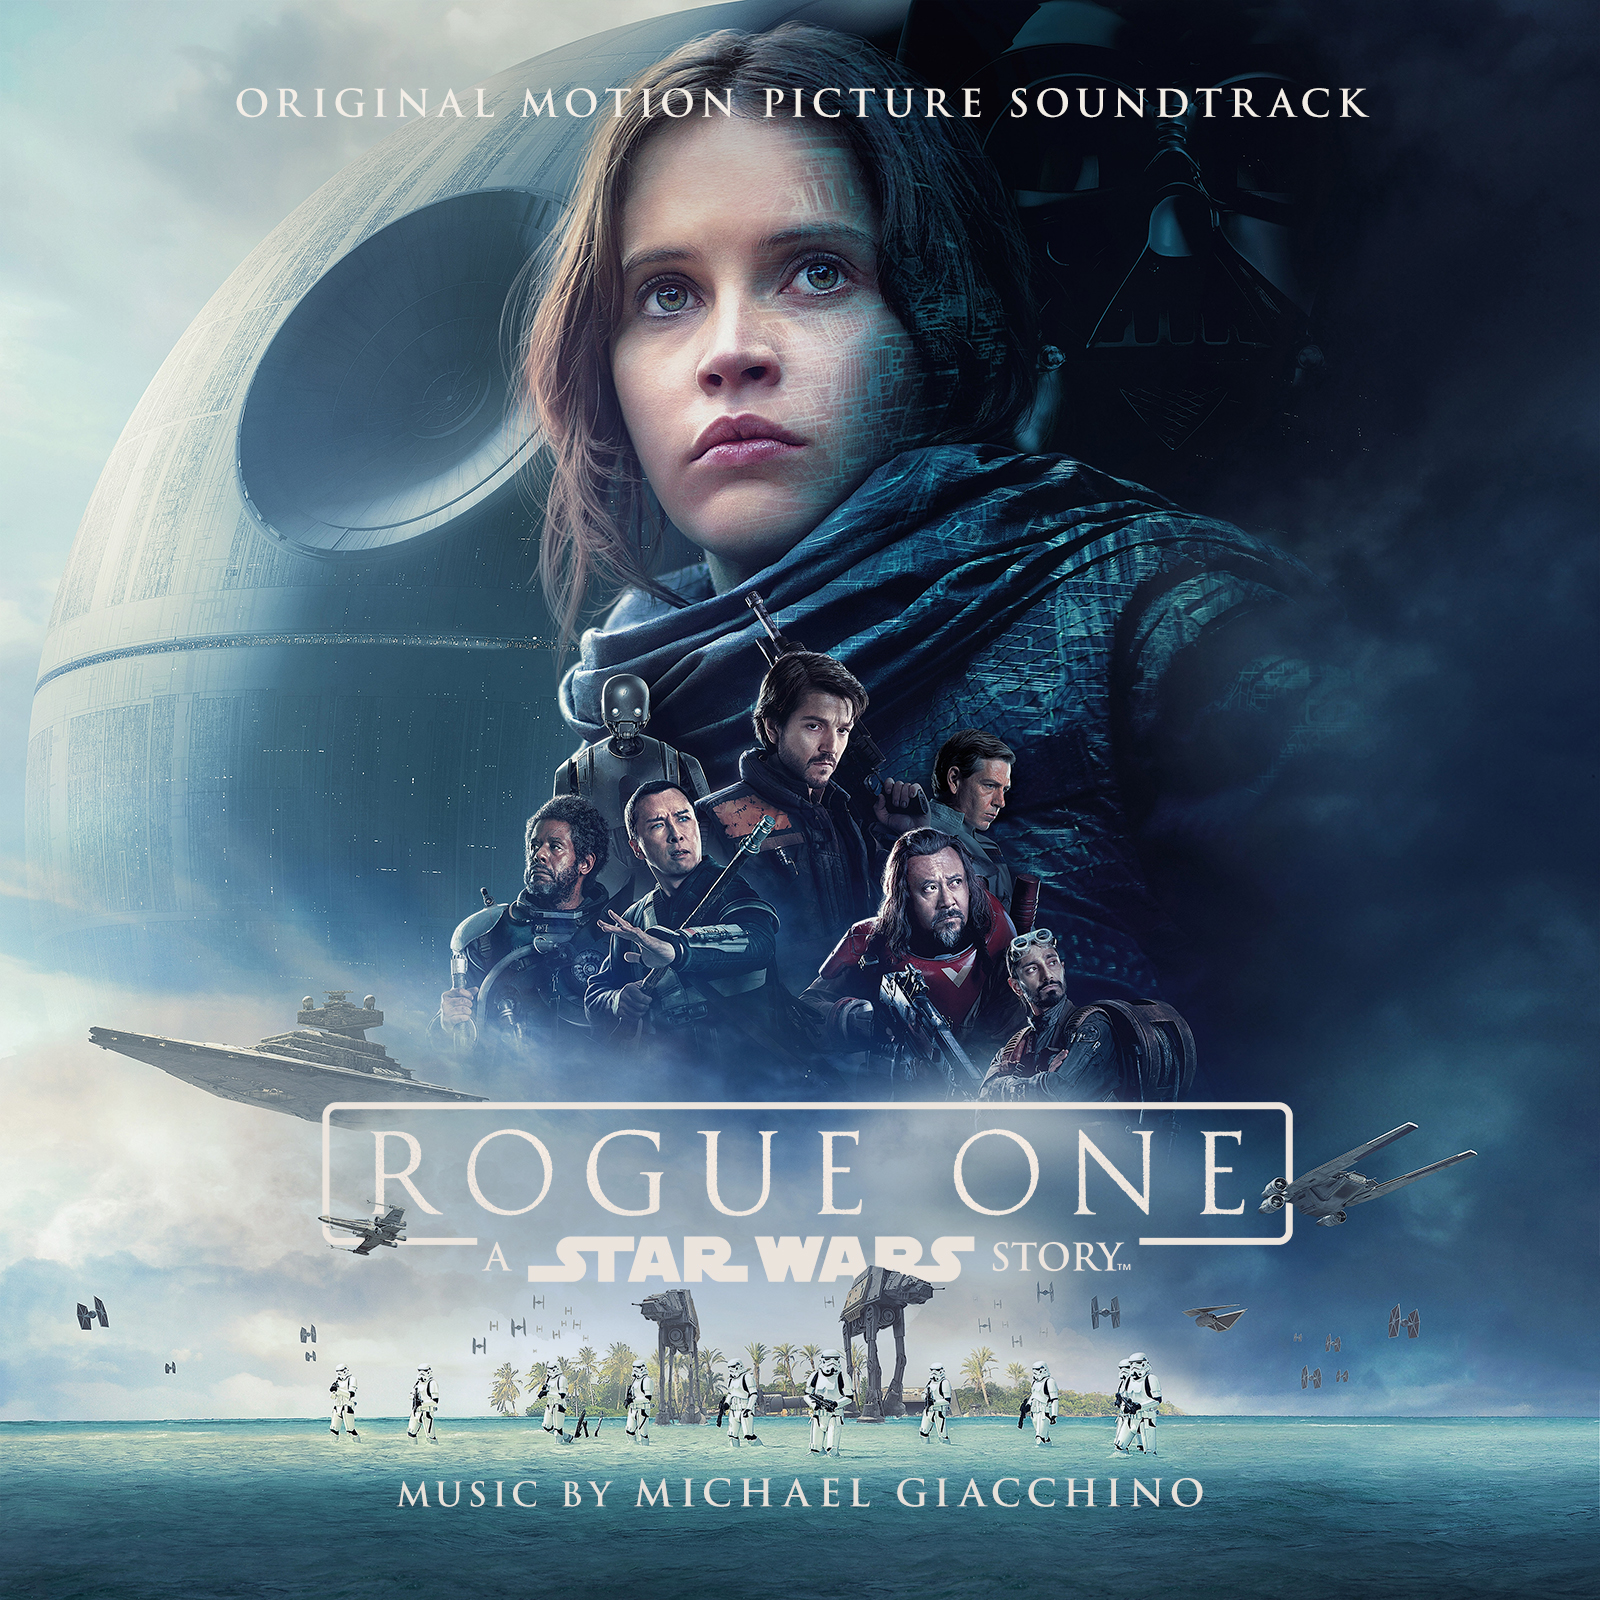 rogue one download mp4